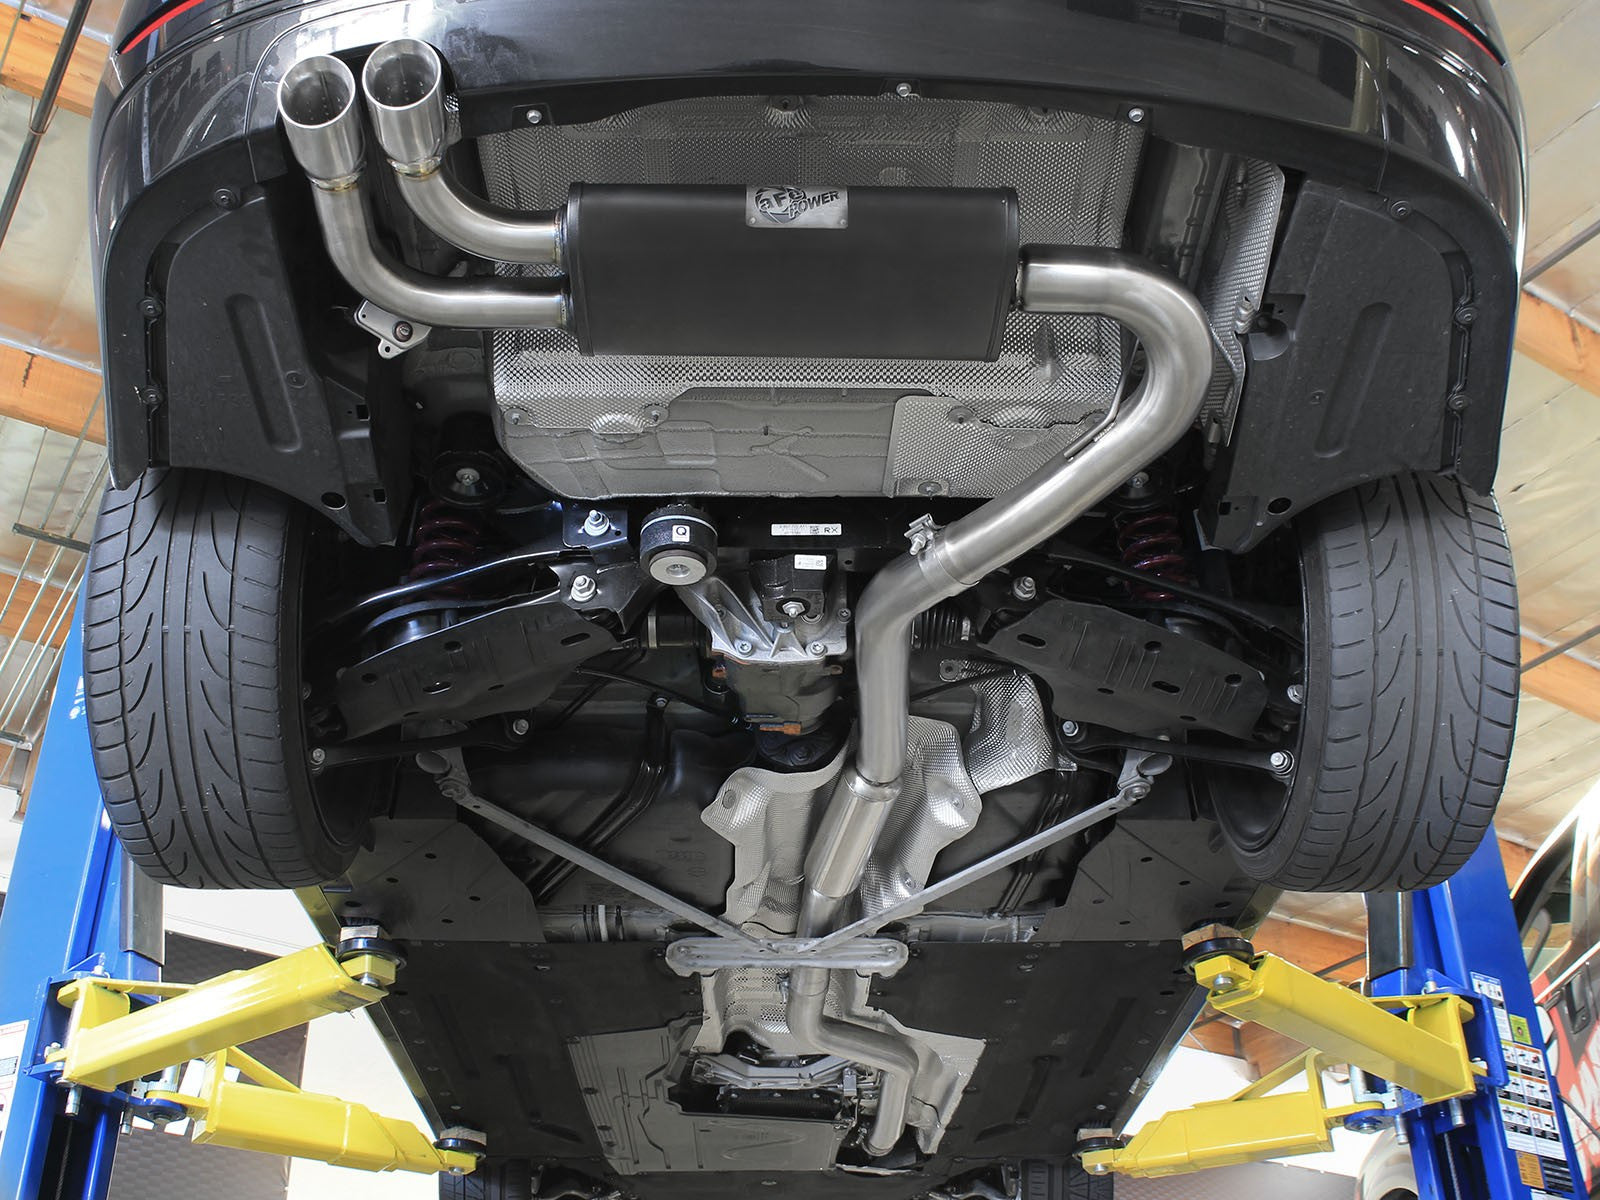 aFe POWER F30 N20 MACH Force-Xp Cat-Back Exhaust System - Bimmer Performance Center